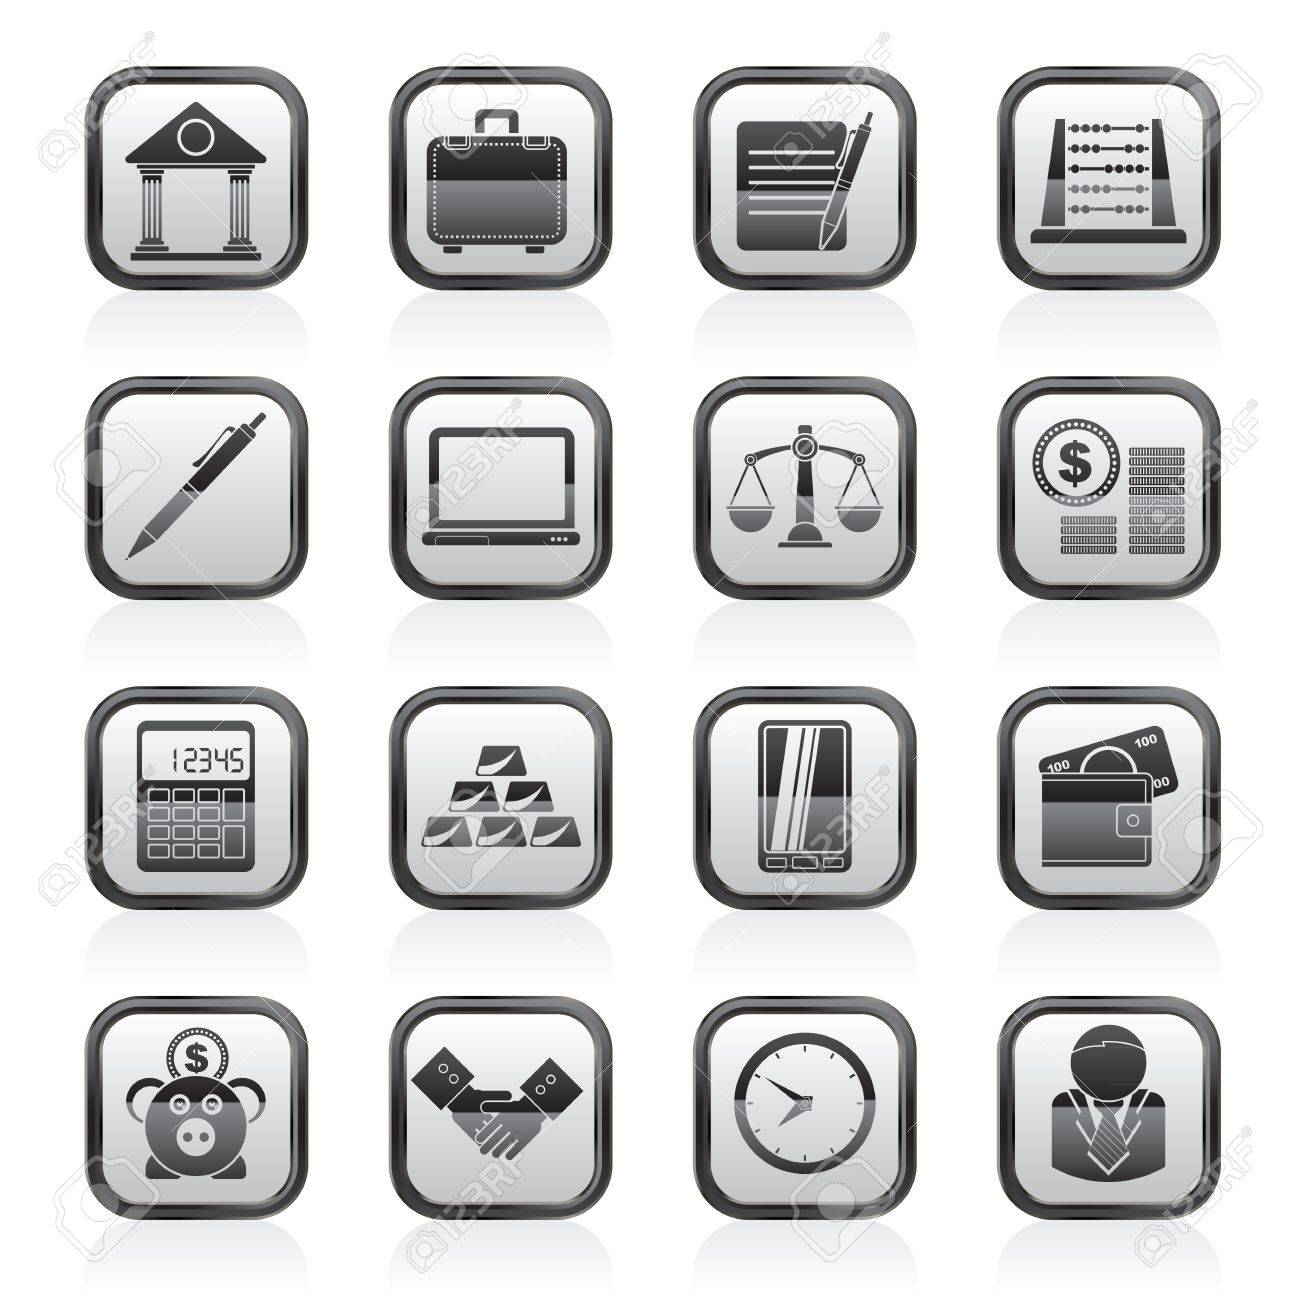 Business and office icons - vector icon set Stock Vector - 18377361